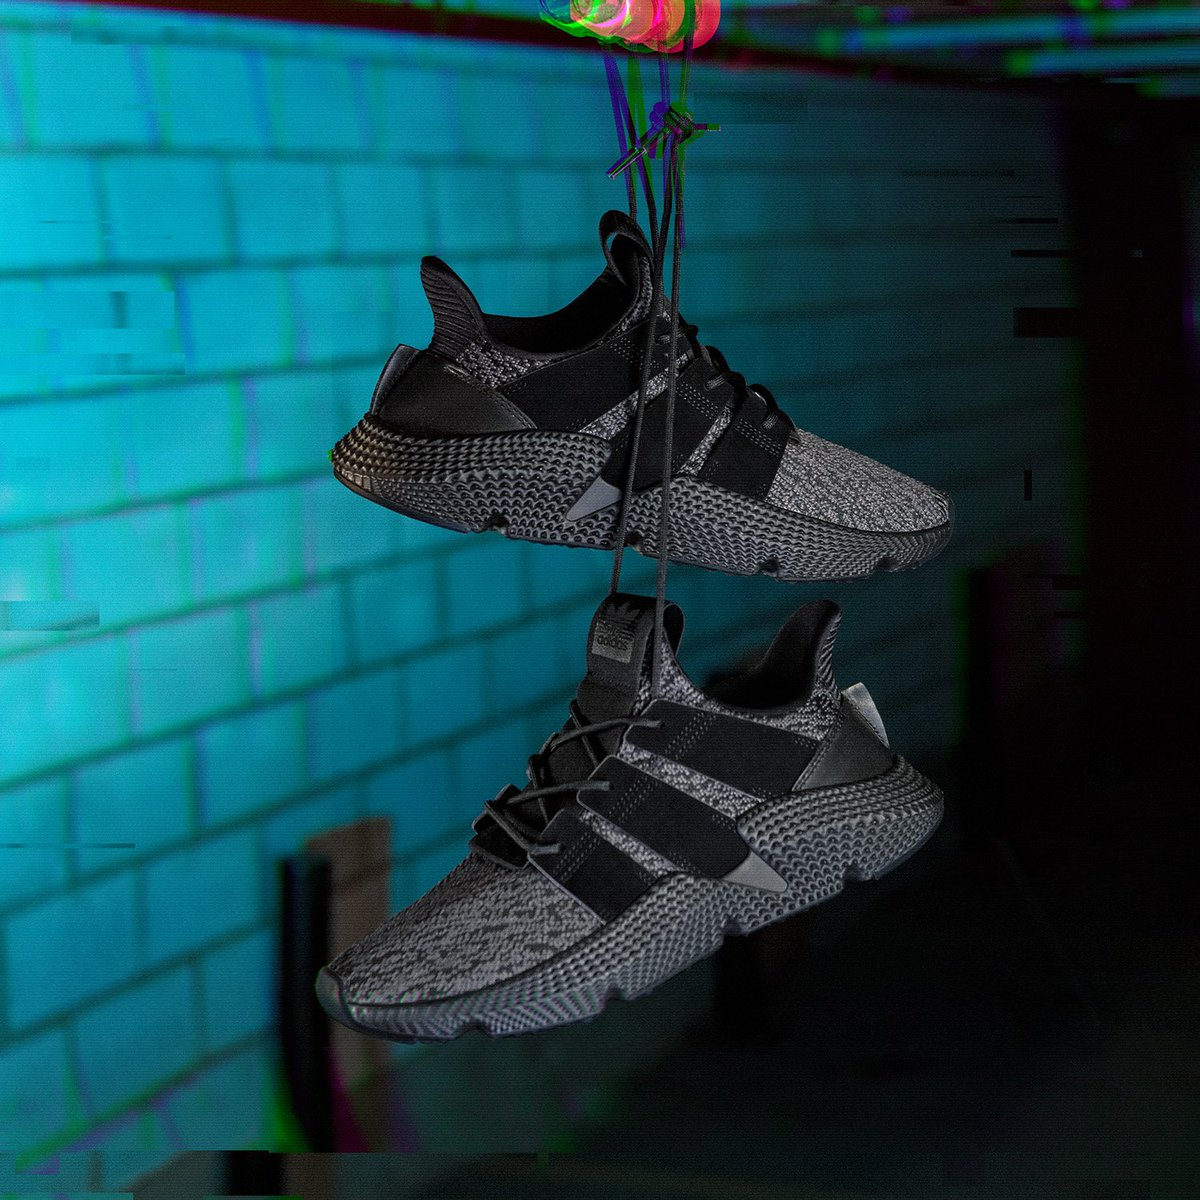 on sale 8821e 40e8d PROPHERE gets the triple black treatment. 5 new colourways arrive in  stores today, shop Prophere here httpa.did.aspropheretw  pic.twitter.com ...